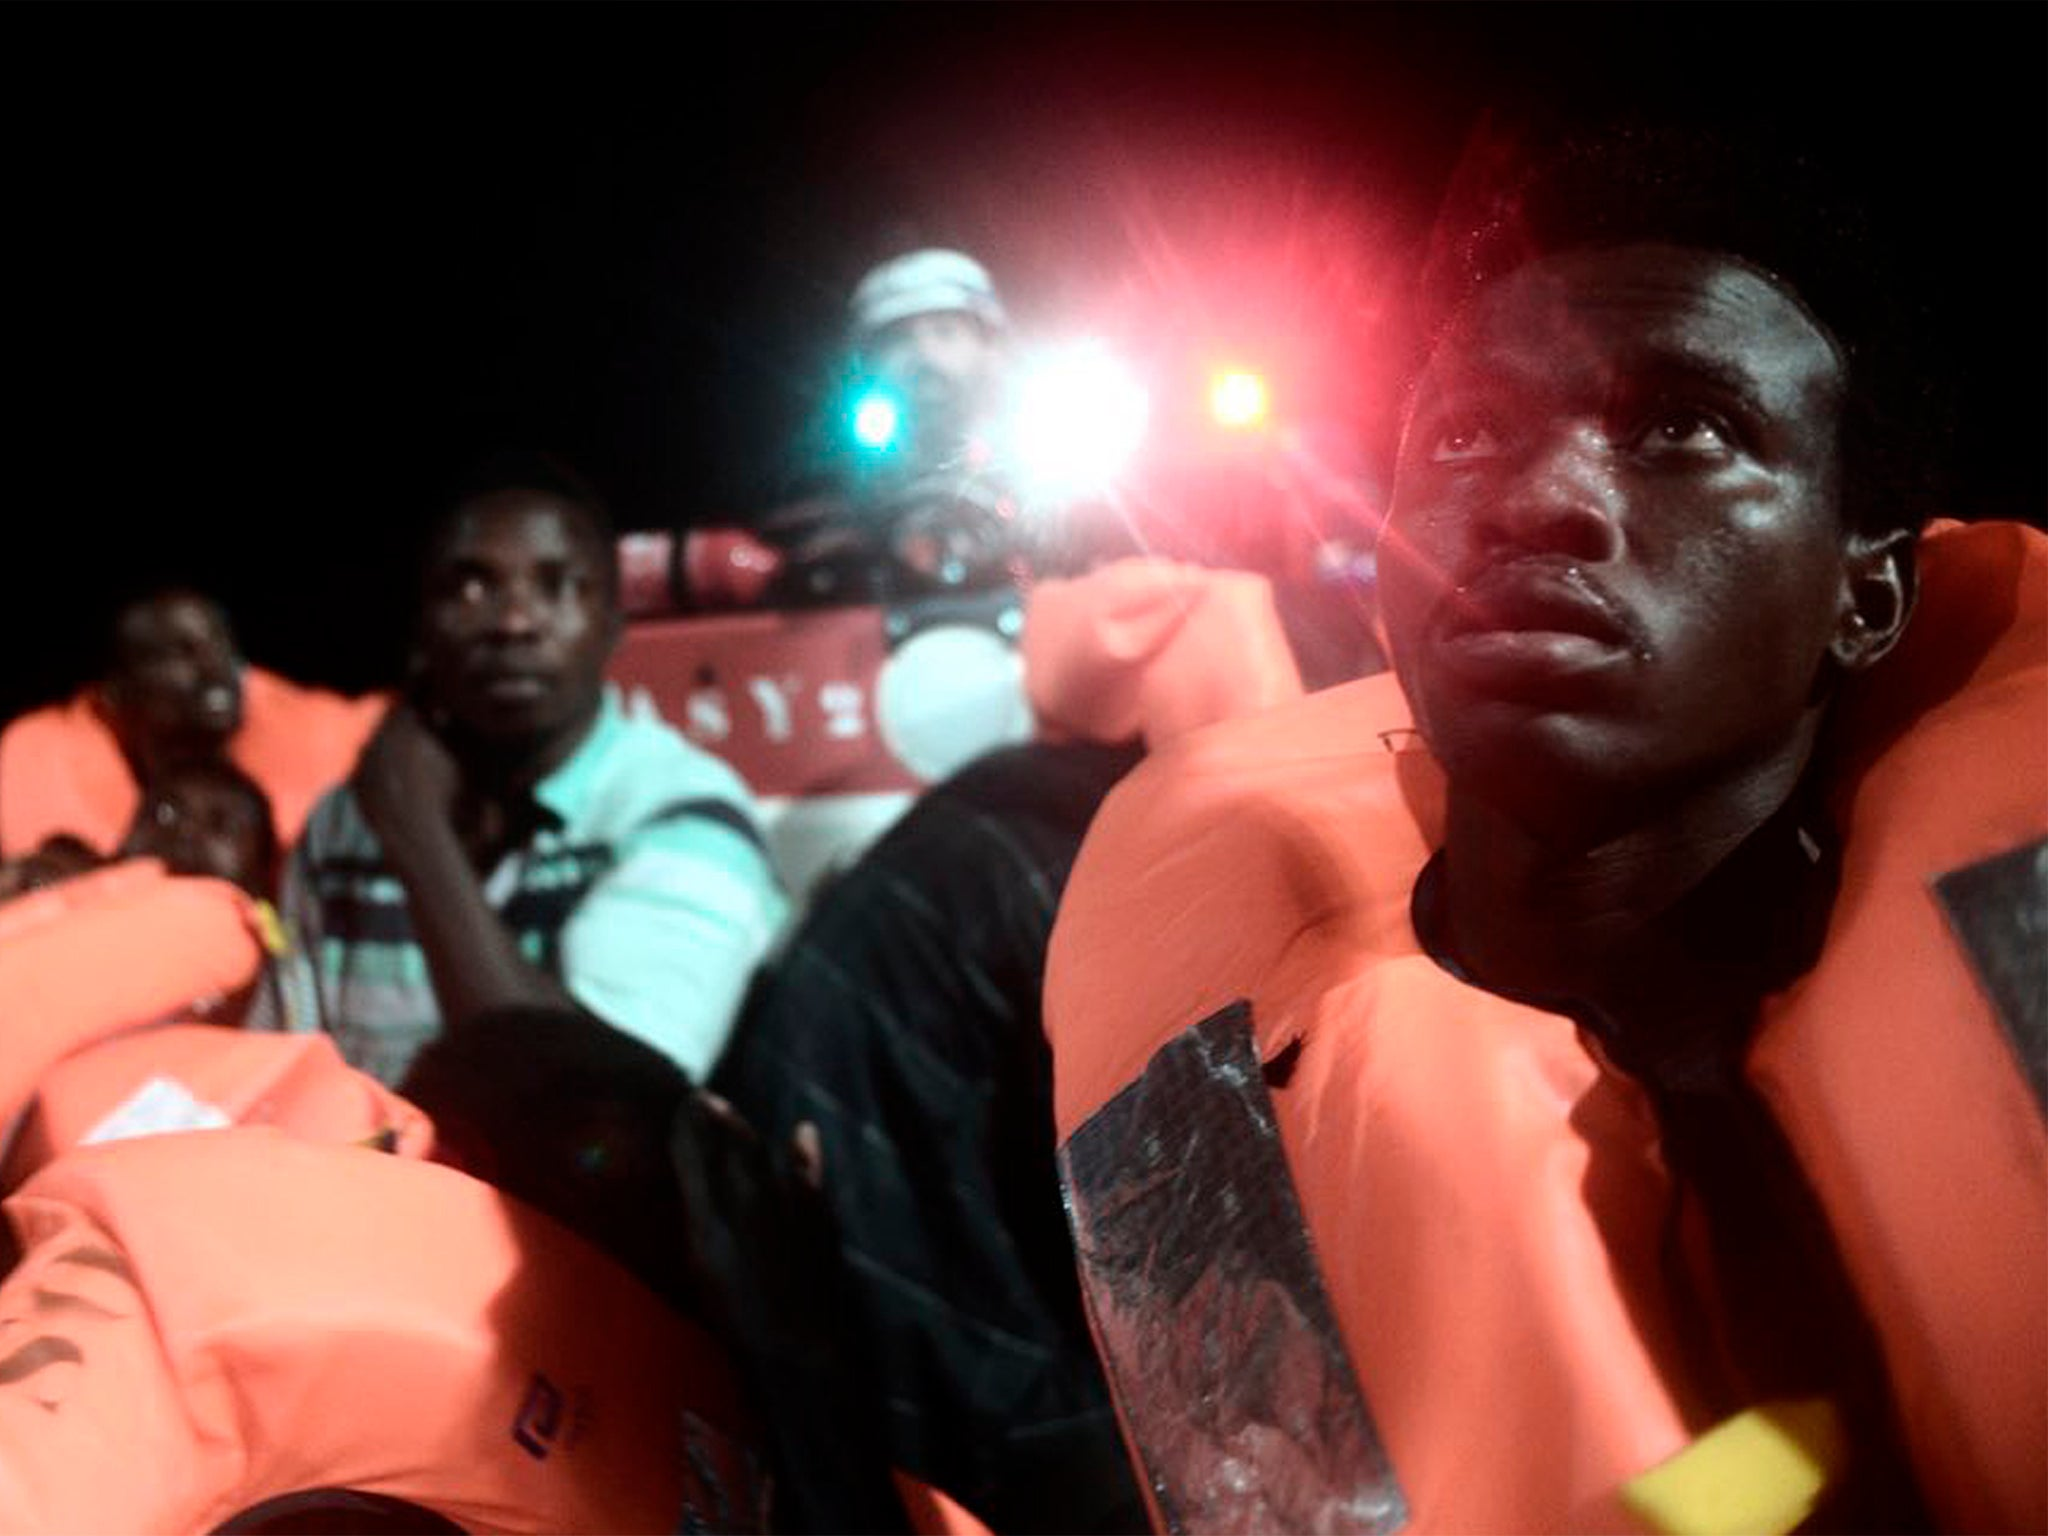 Italy's far-right government tells rescue ships not to help thousands of refugees in peril at sea